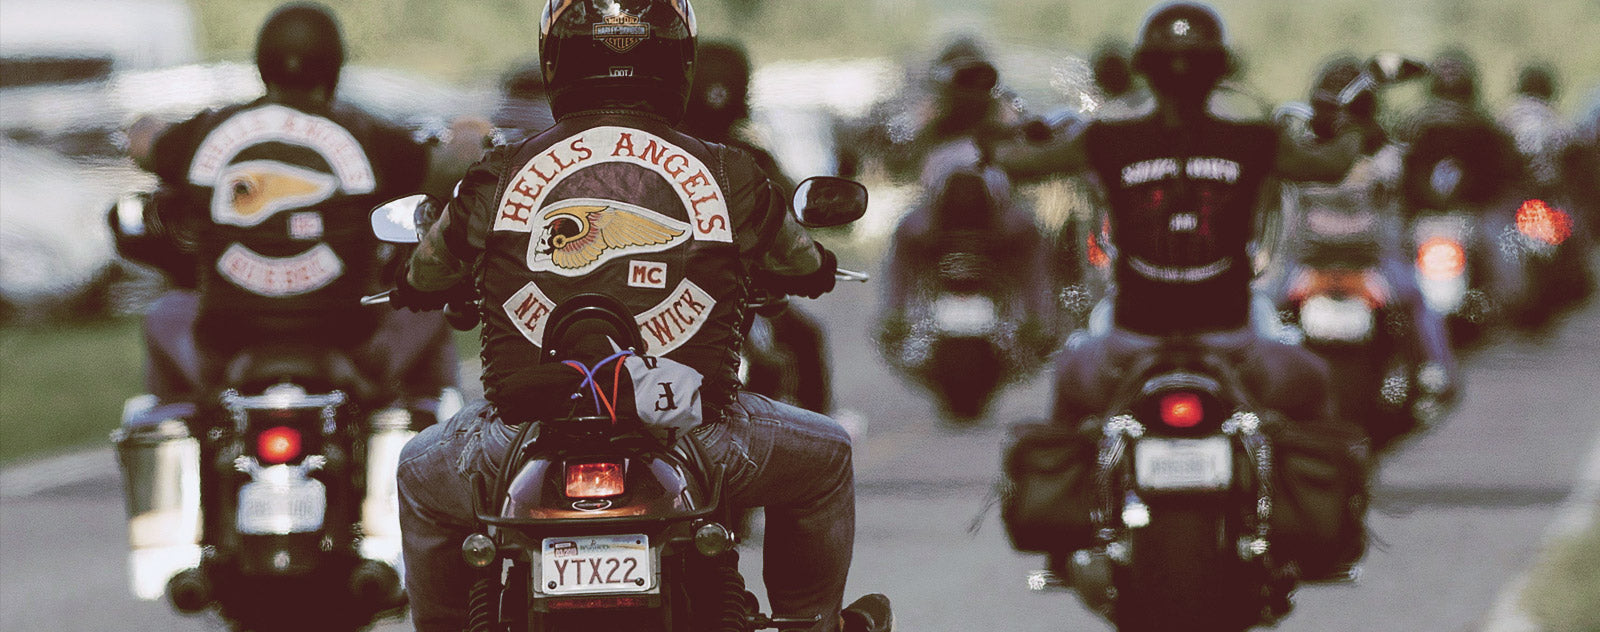 Motards Hells Angels